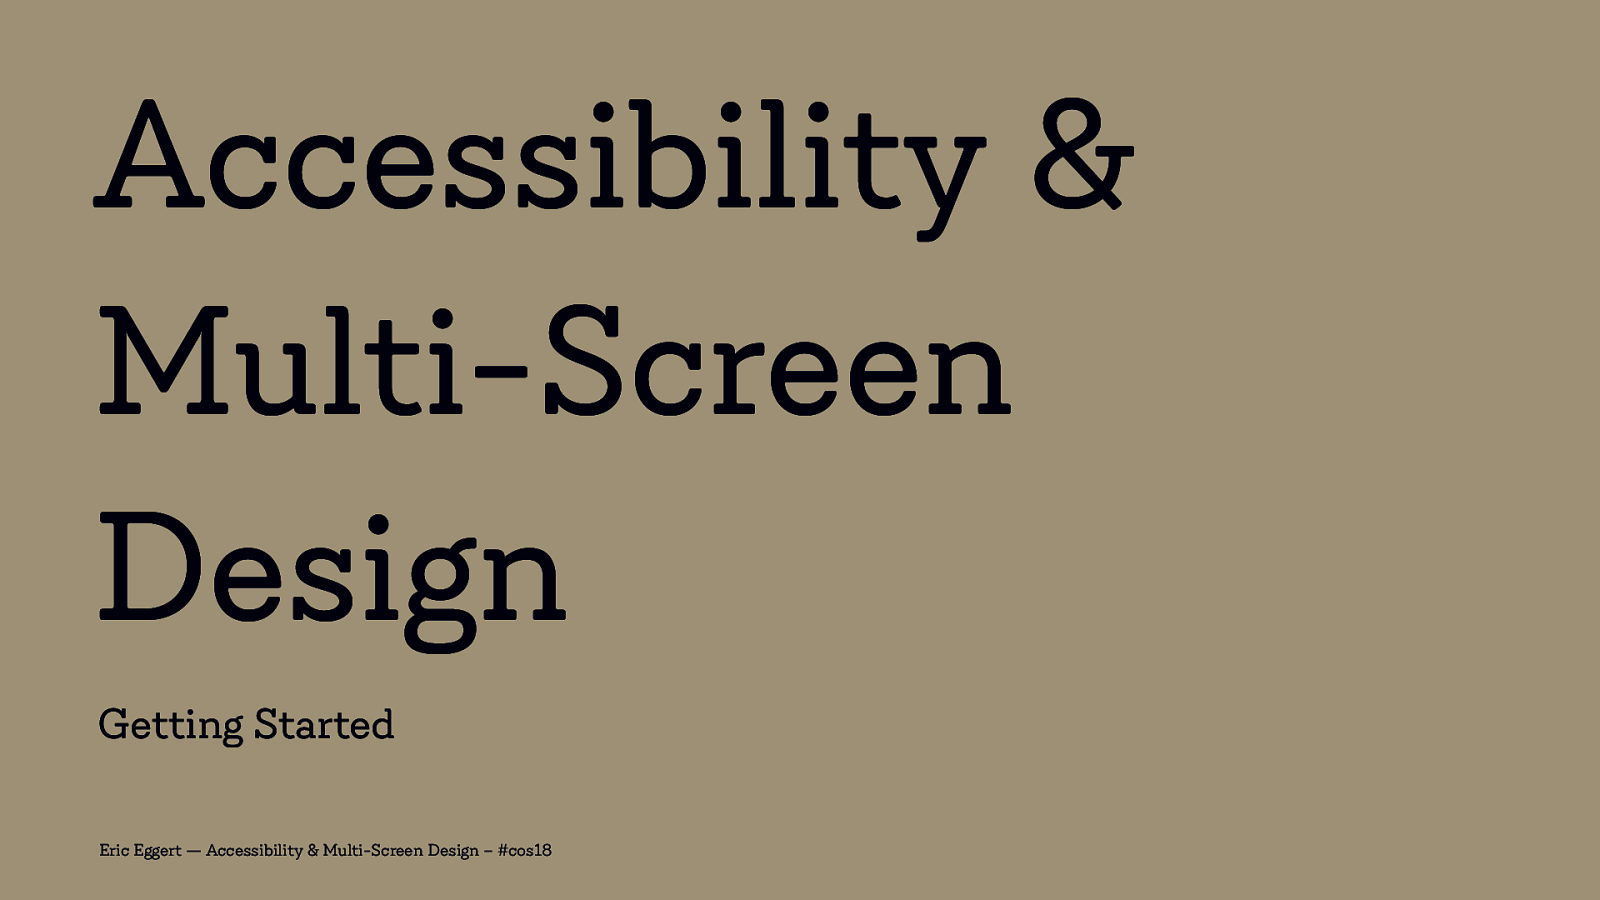 Accessibility & Multi-Screen Design: Getting Started